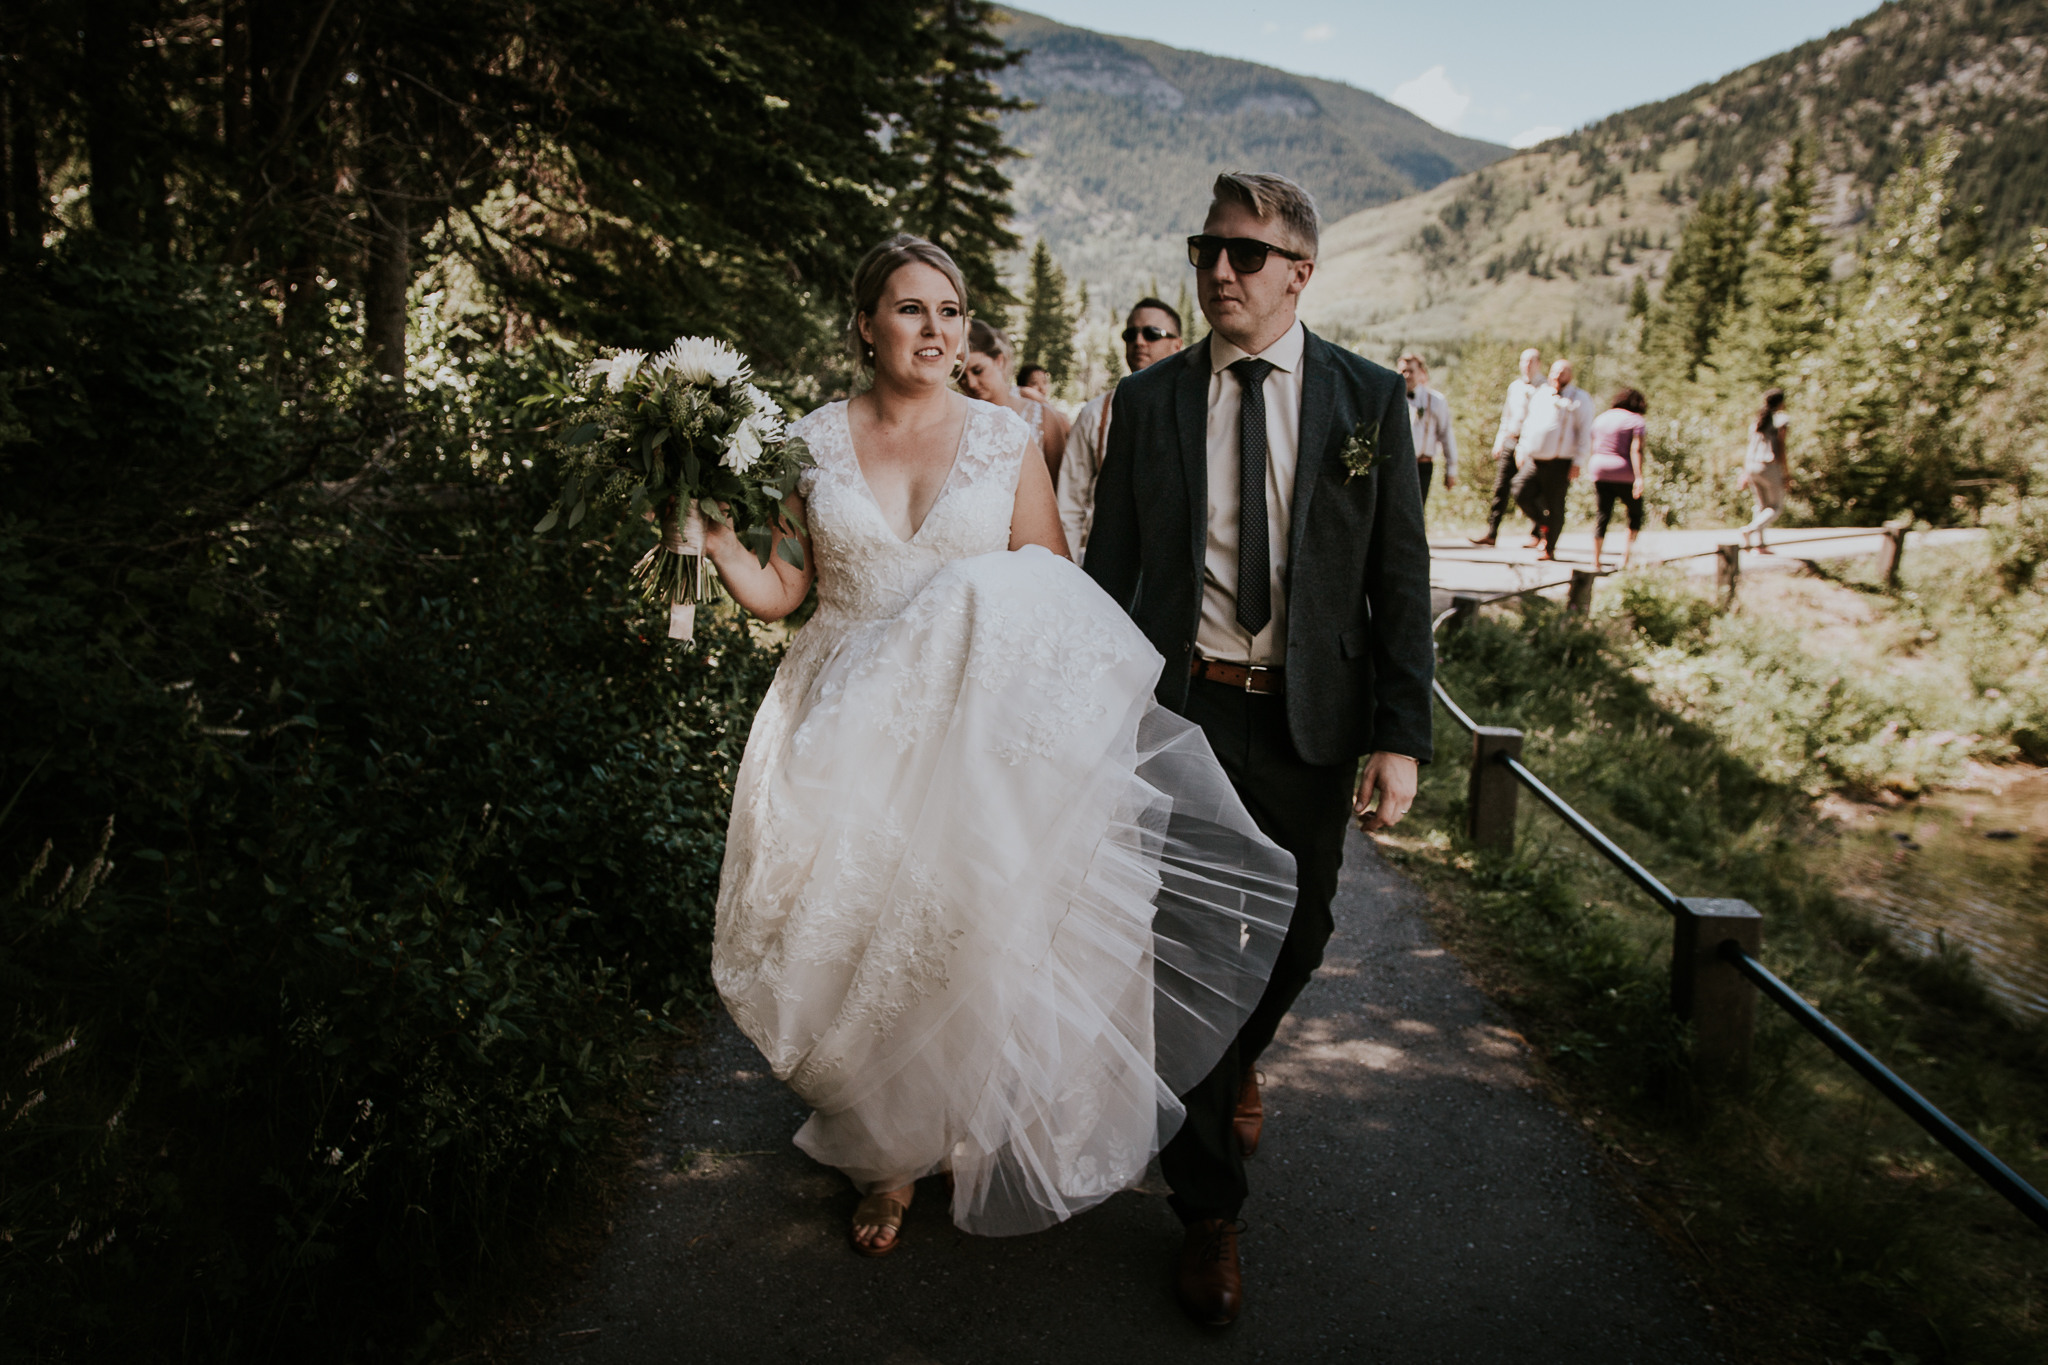 Bride and groom wearing sunglasses at Mount Lorette ponds Kananaskis